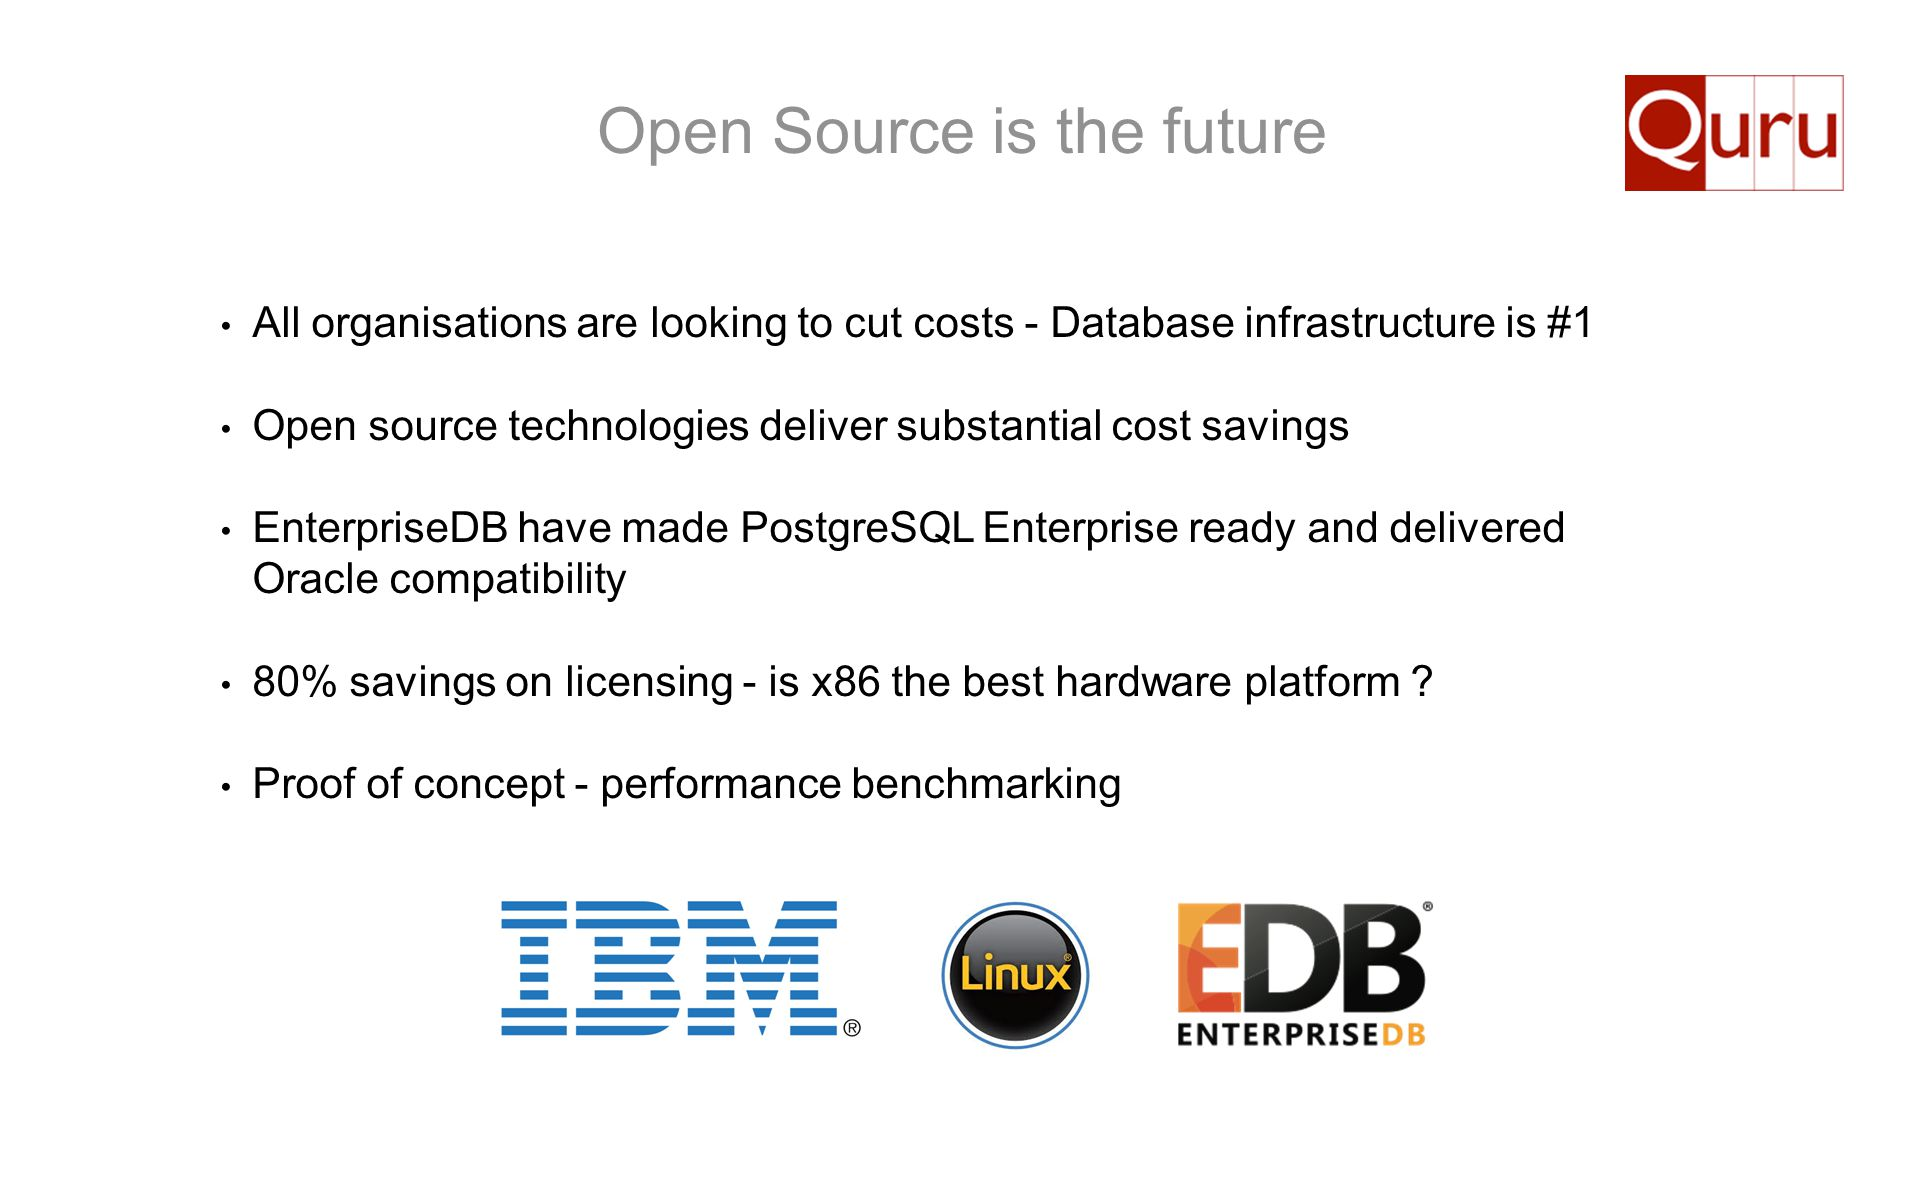 Open Source is the future